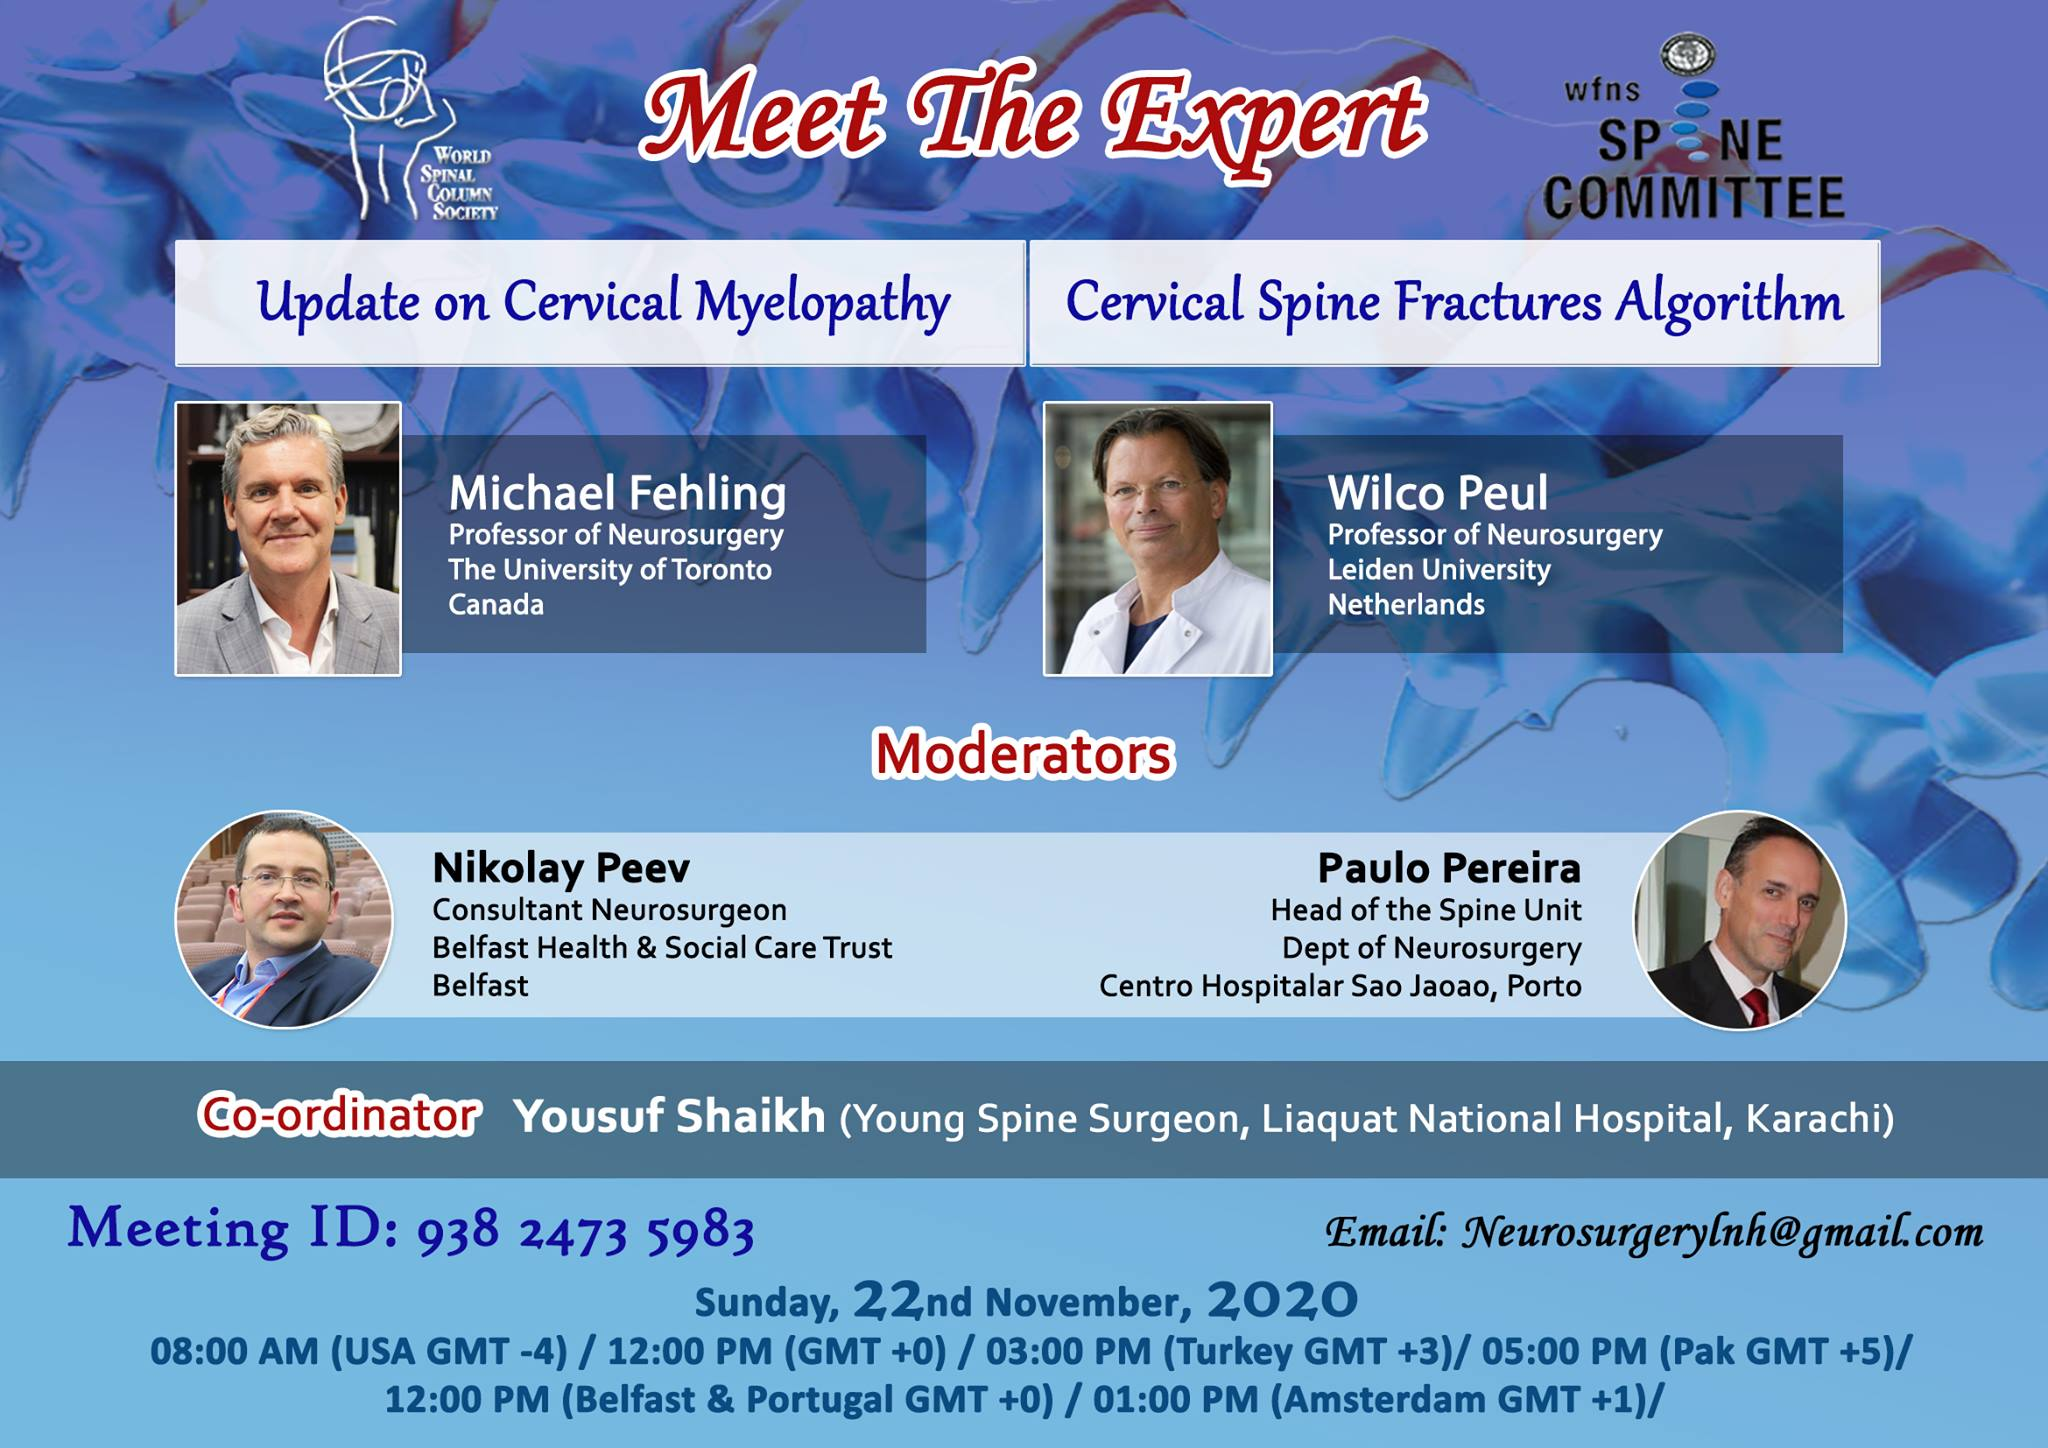 was LIVE….., two C-Spine Lectures, by Michael Fehling, and Wilco Peul for World Spinal Column Society